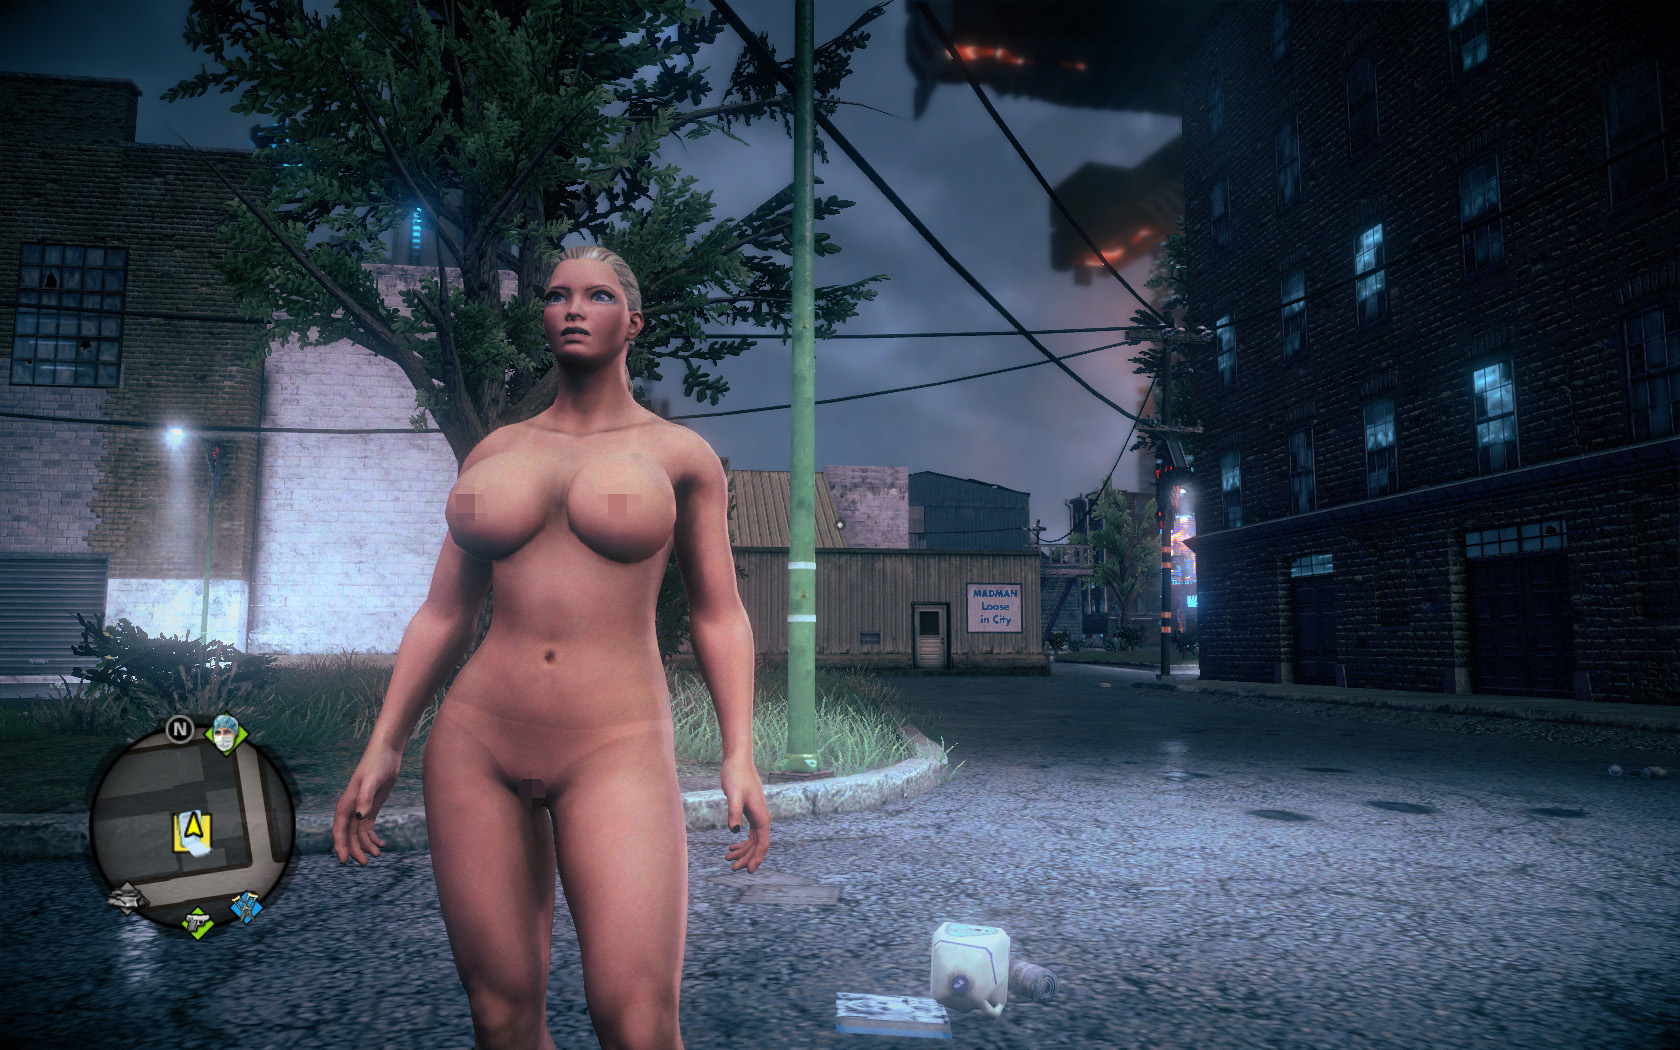 Saints row 4 female nude mod download exploited movie